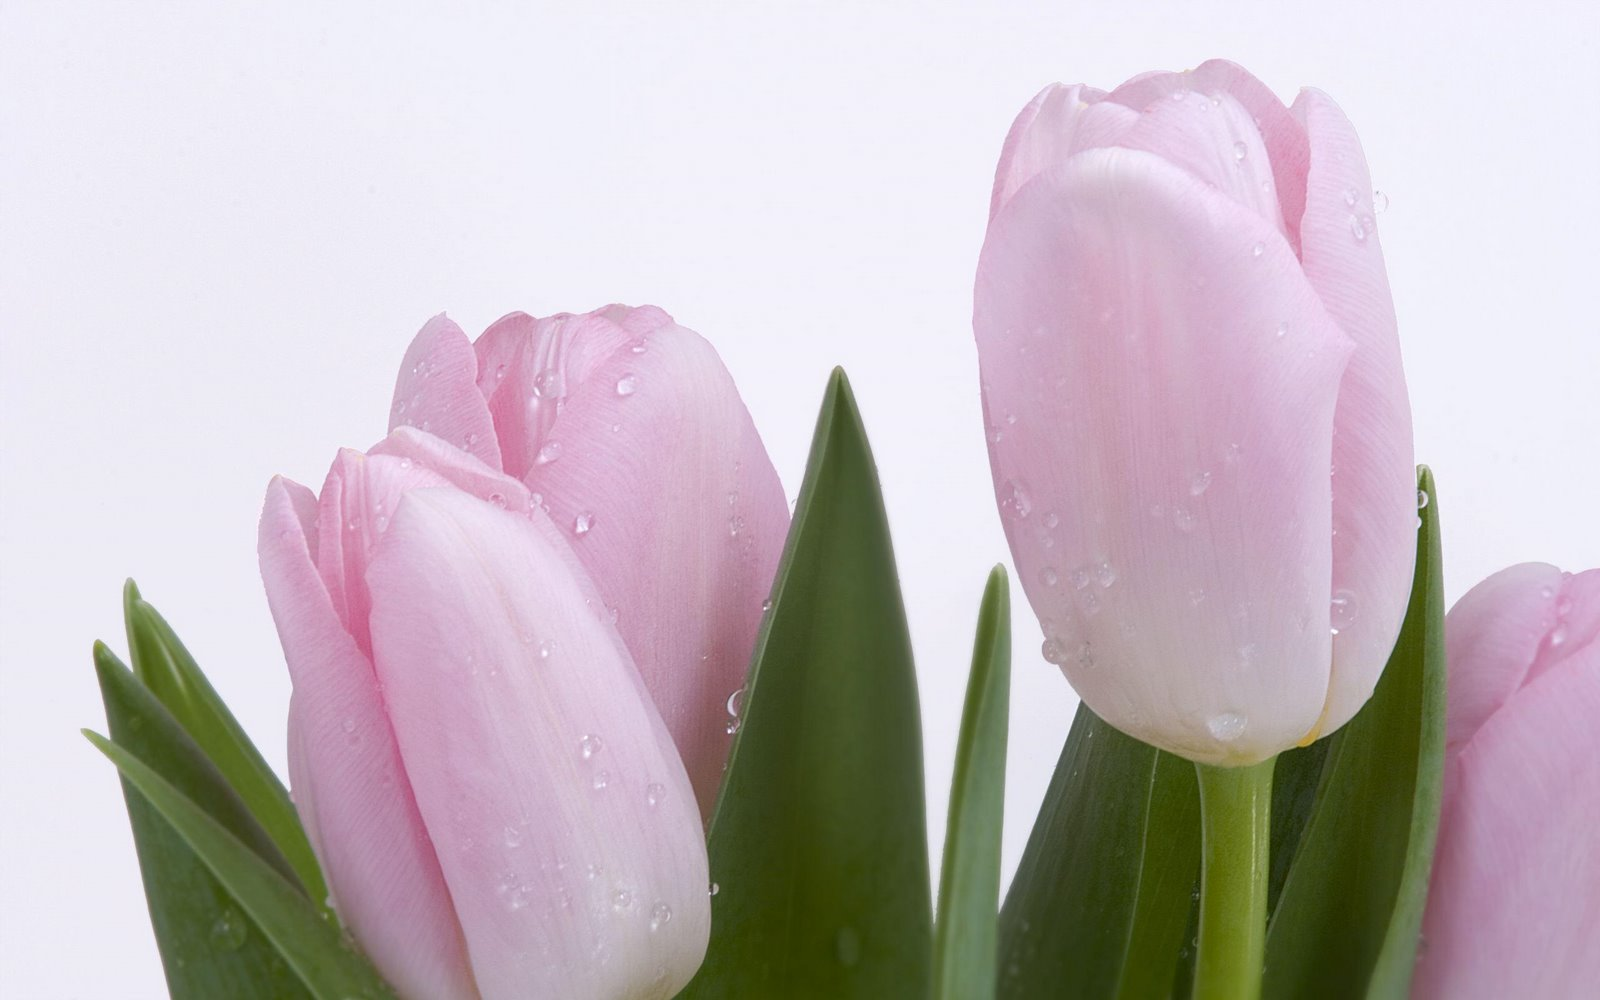 Free pictures of tulips flowers image freeuse stock 24 Tulip Flower Images Pictures image freeuse stock